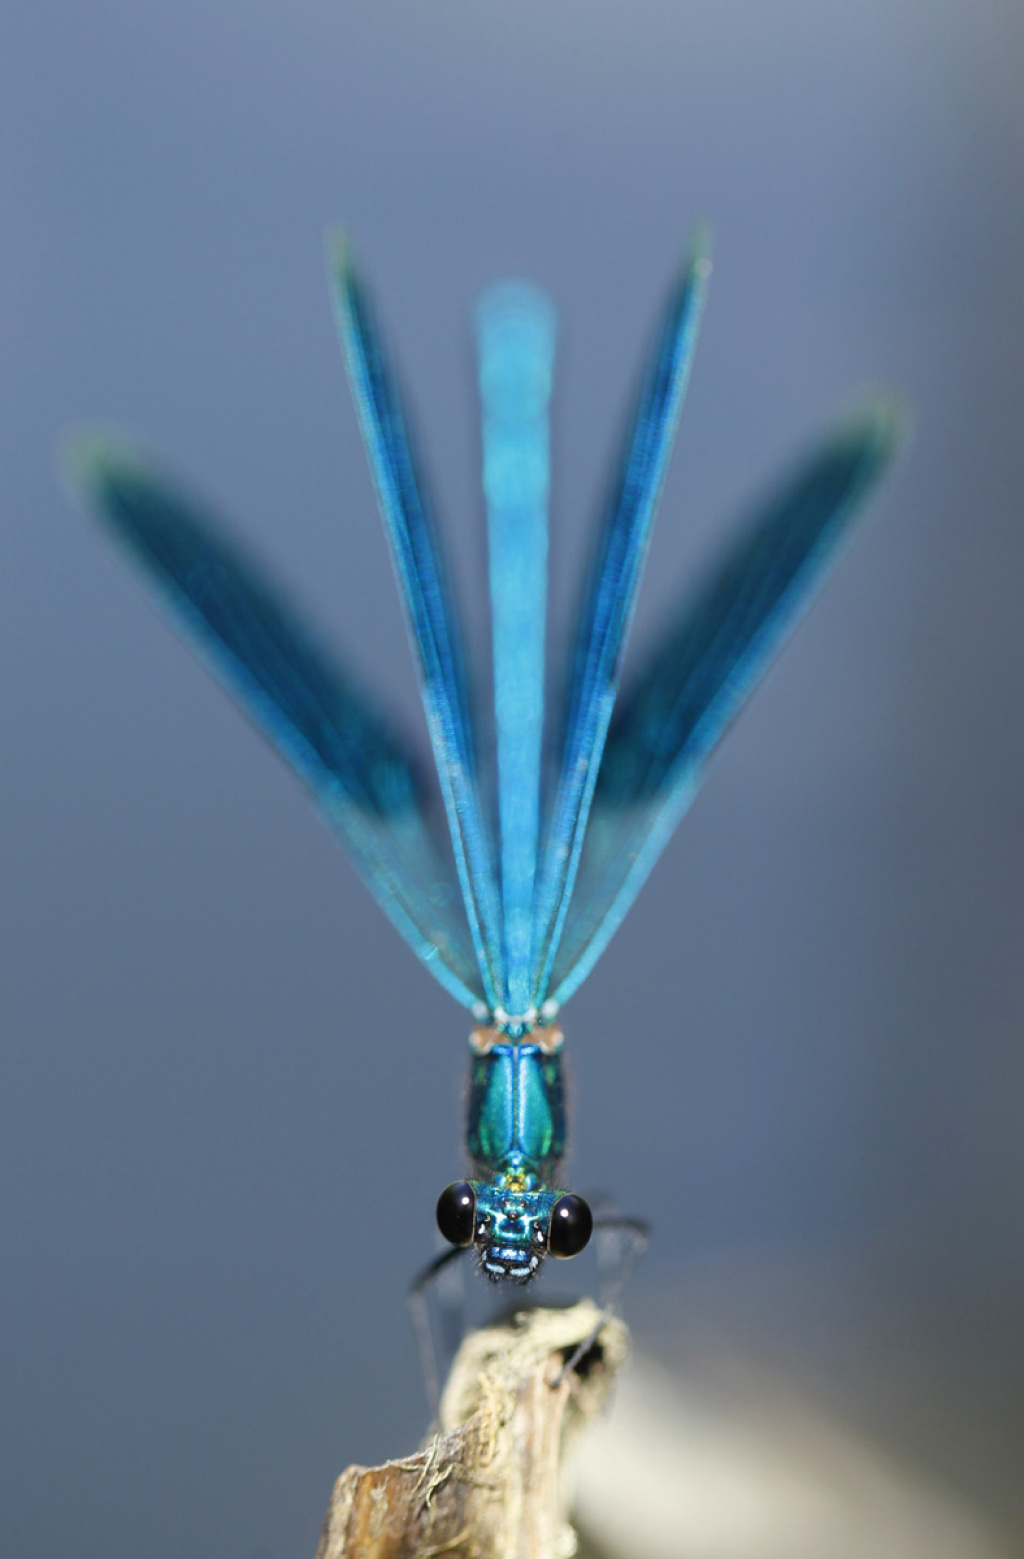 bended demoiselle in threatening posture